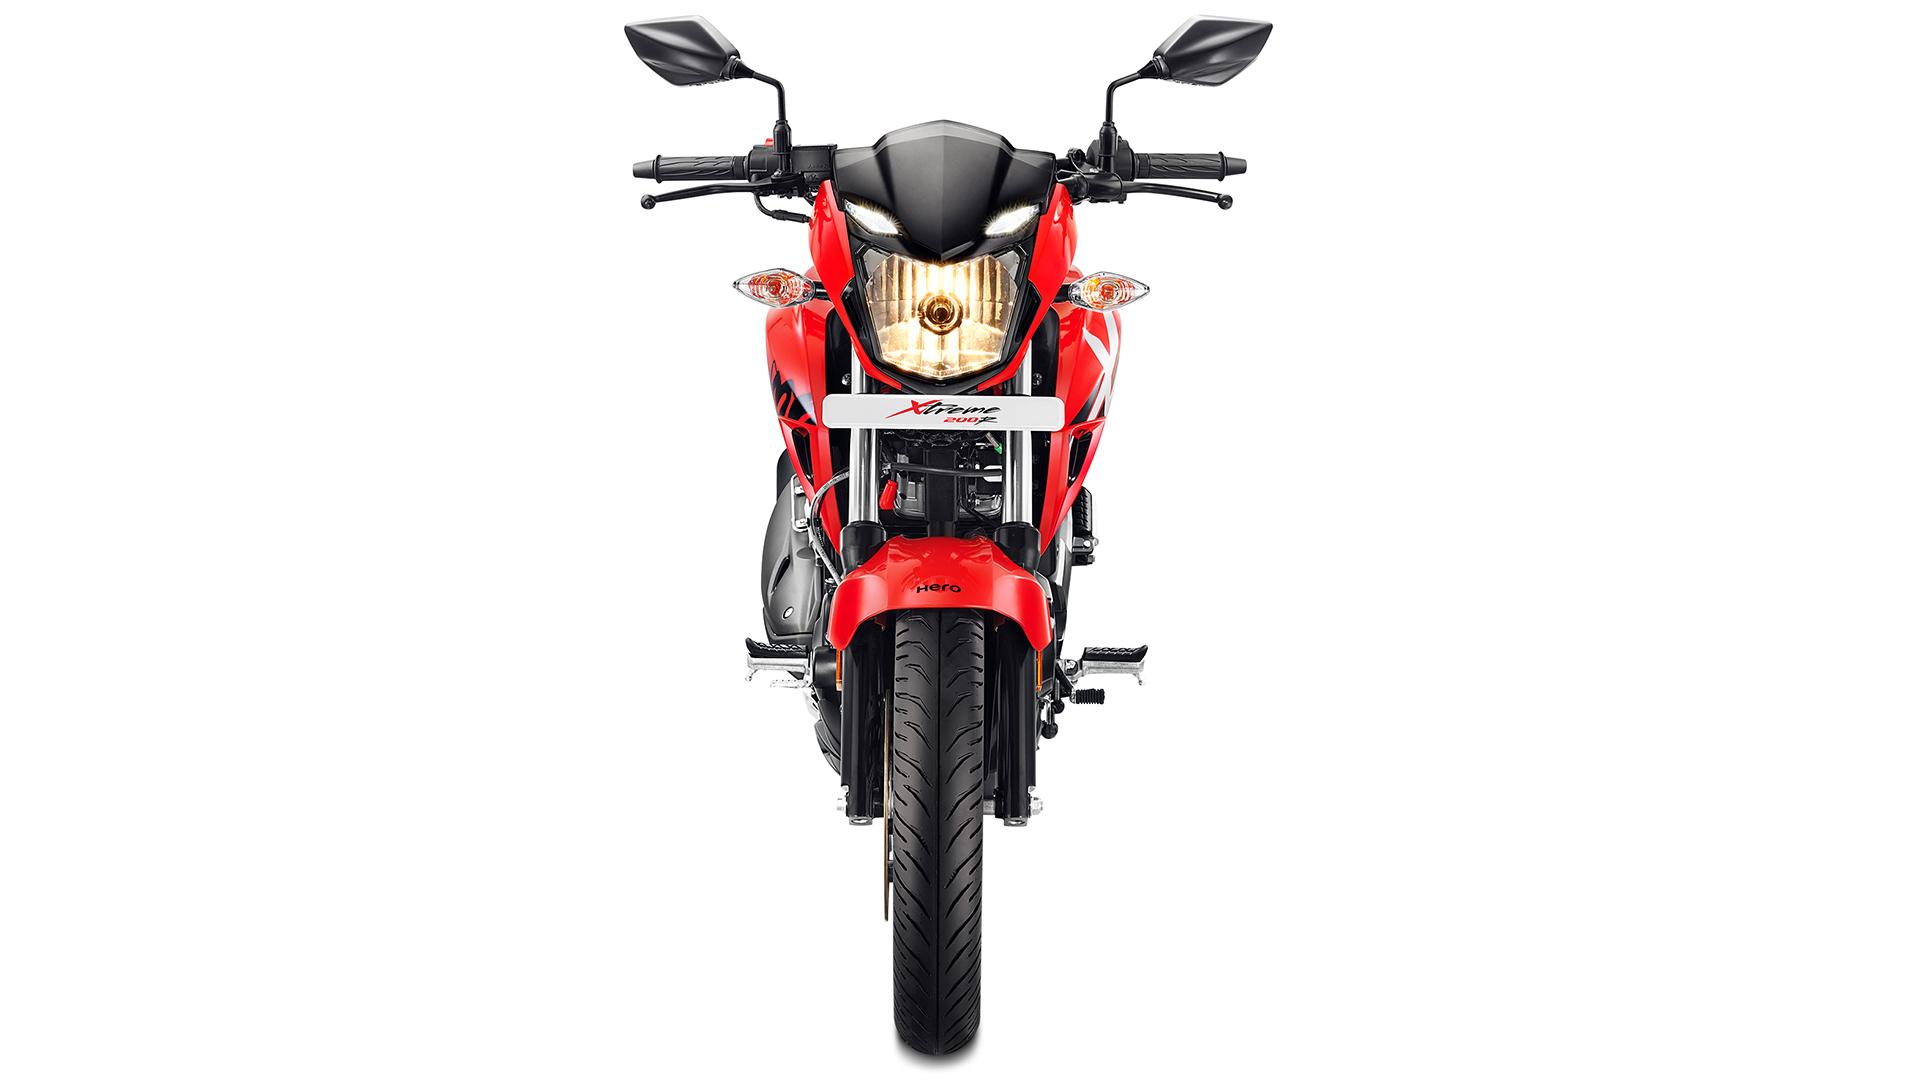 Hero Xtreme 200R 2018 ABS - Price, Mileage, Reviews ...